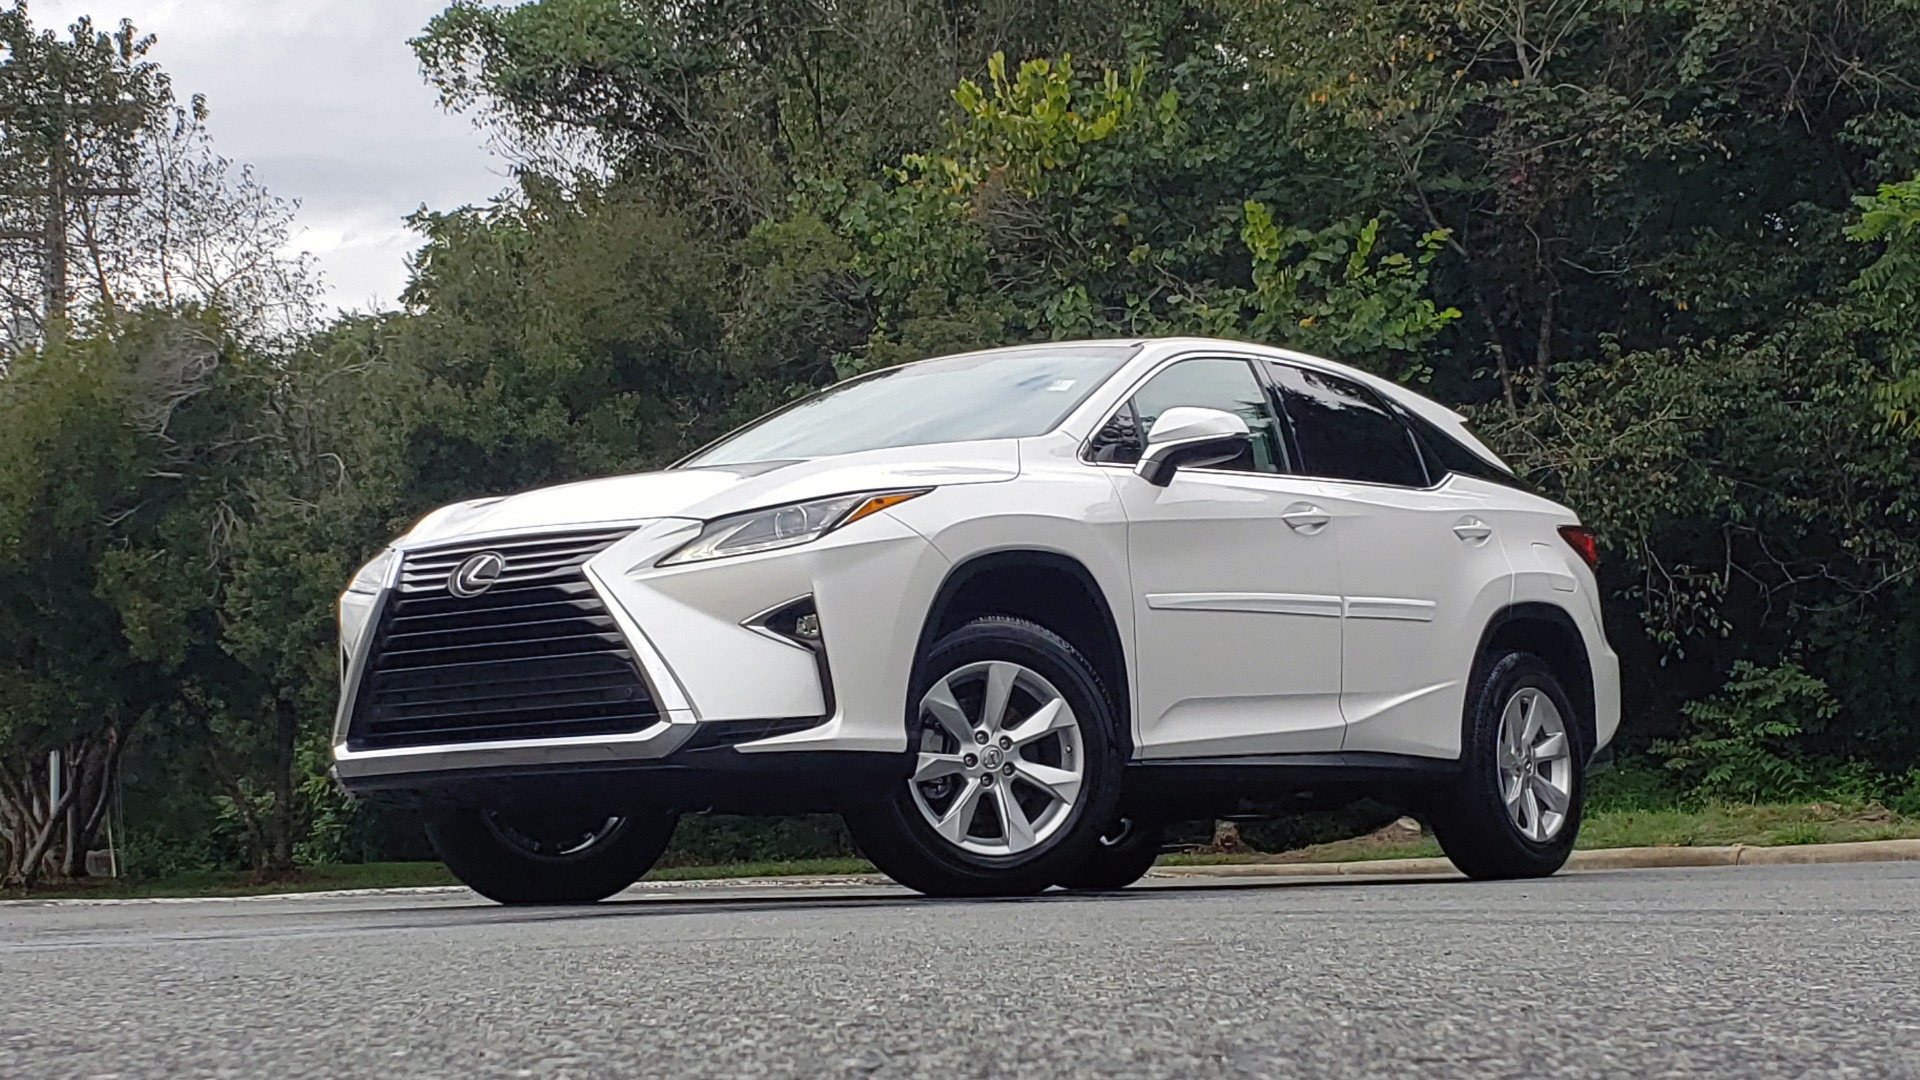 Used 2016 Lexus RX 350 FWD / 4-DR / 3.5L V6 / 8-SPD AUTO / LEATHER / REARVIEW for sale $31,995 at Formula Imports in Charlotte NC 28227 2